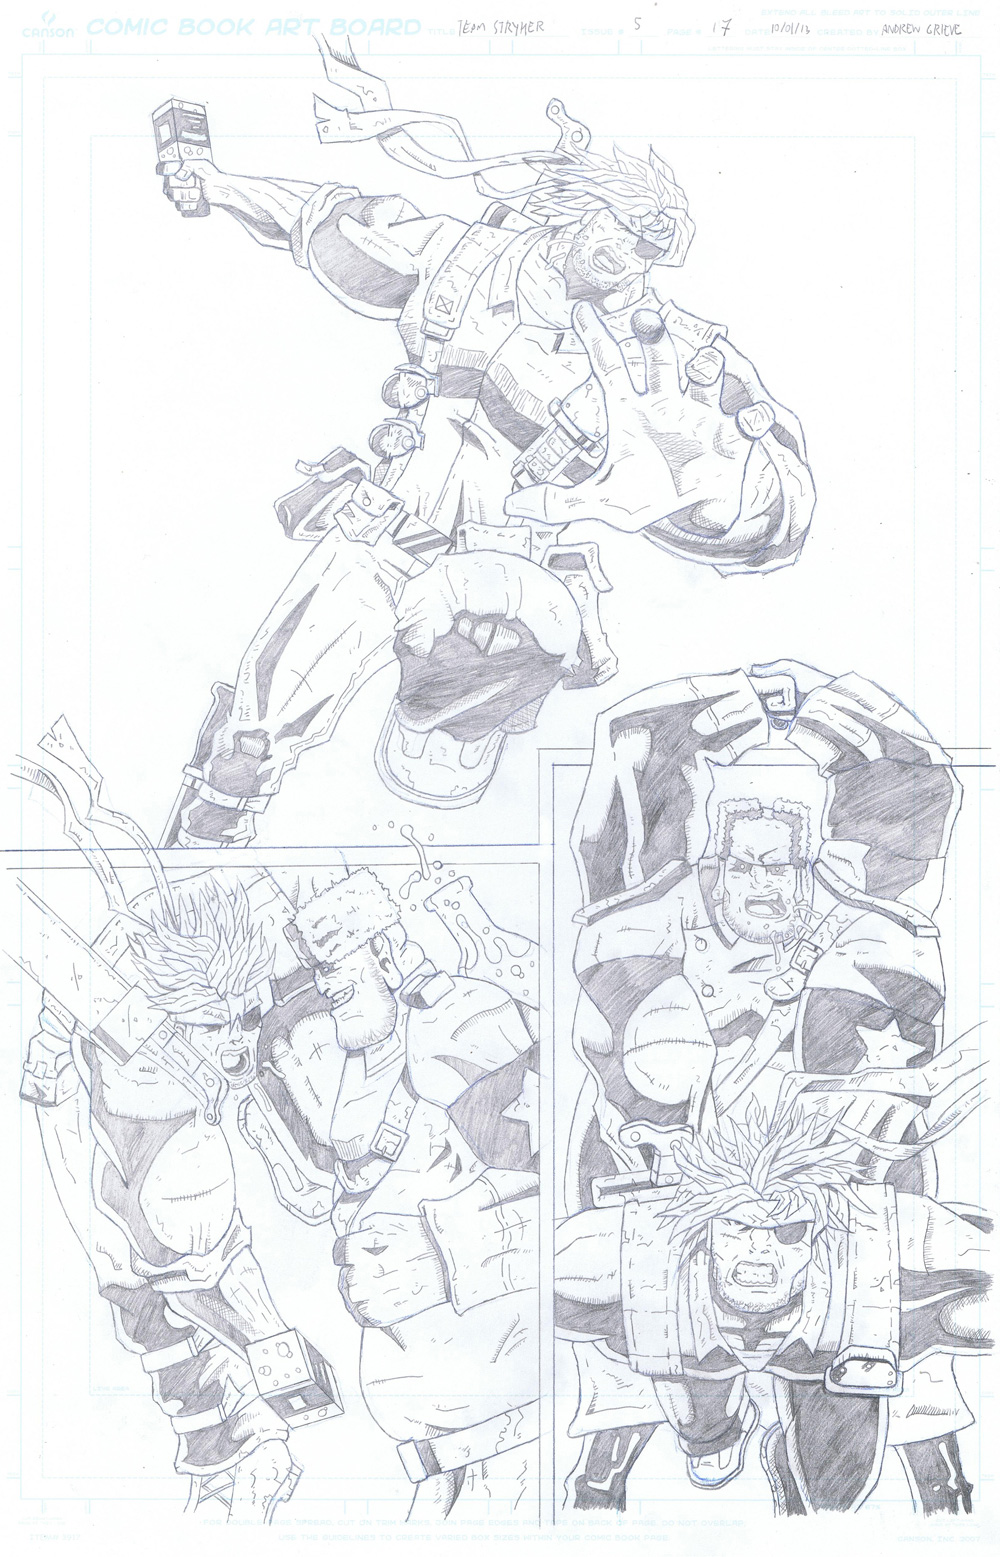 MISSION 005: PAGE 17 PENCIL